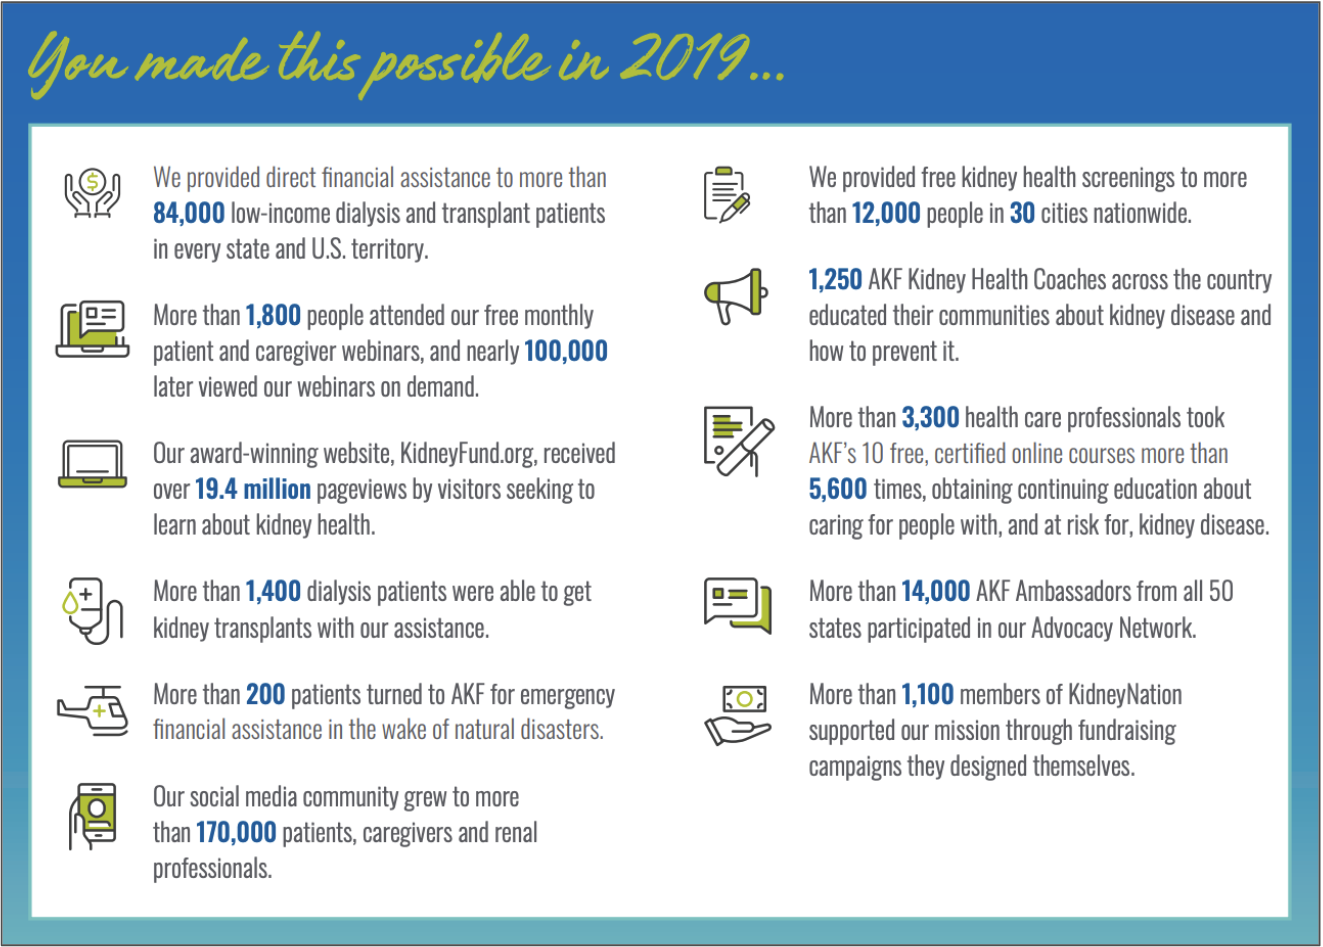 American Kidney Foundation's annual report